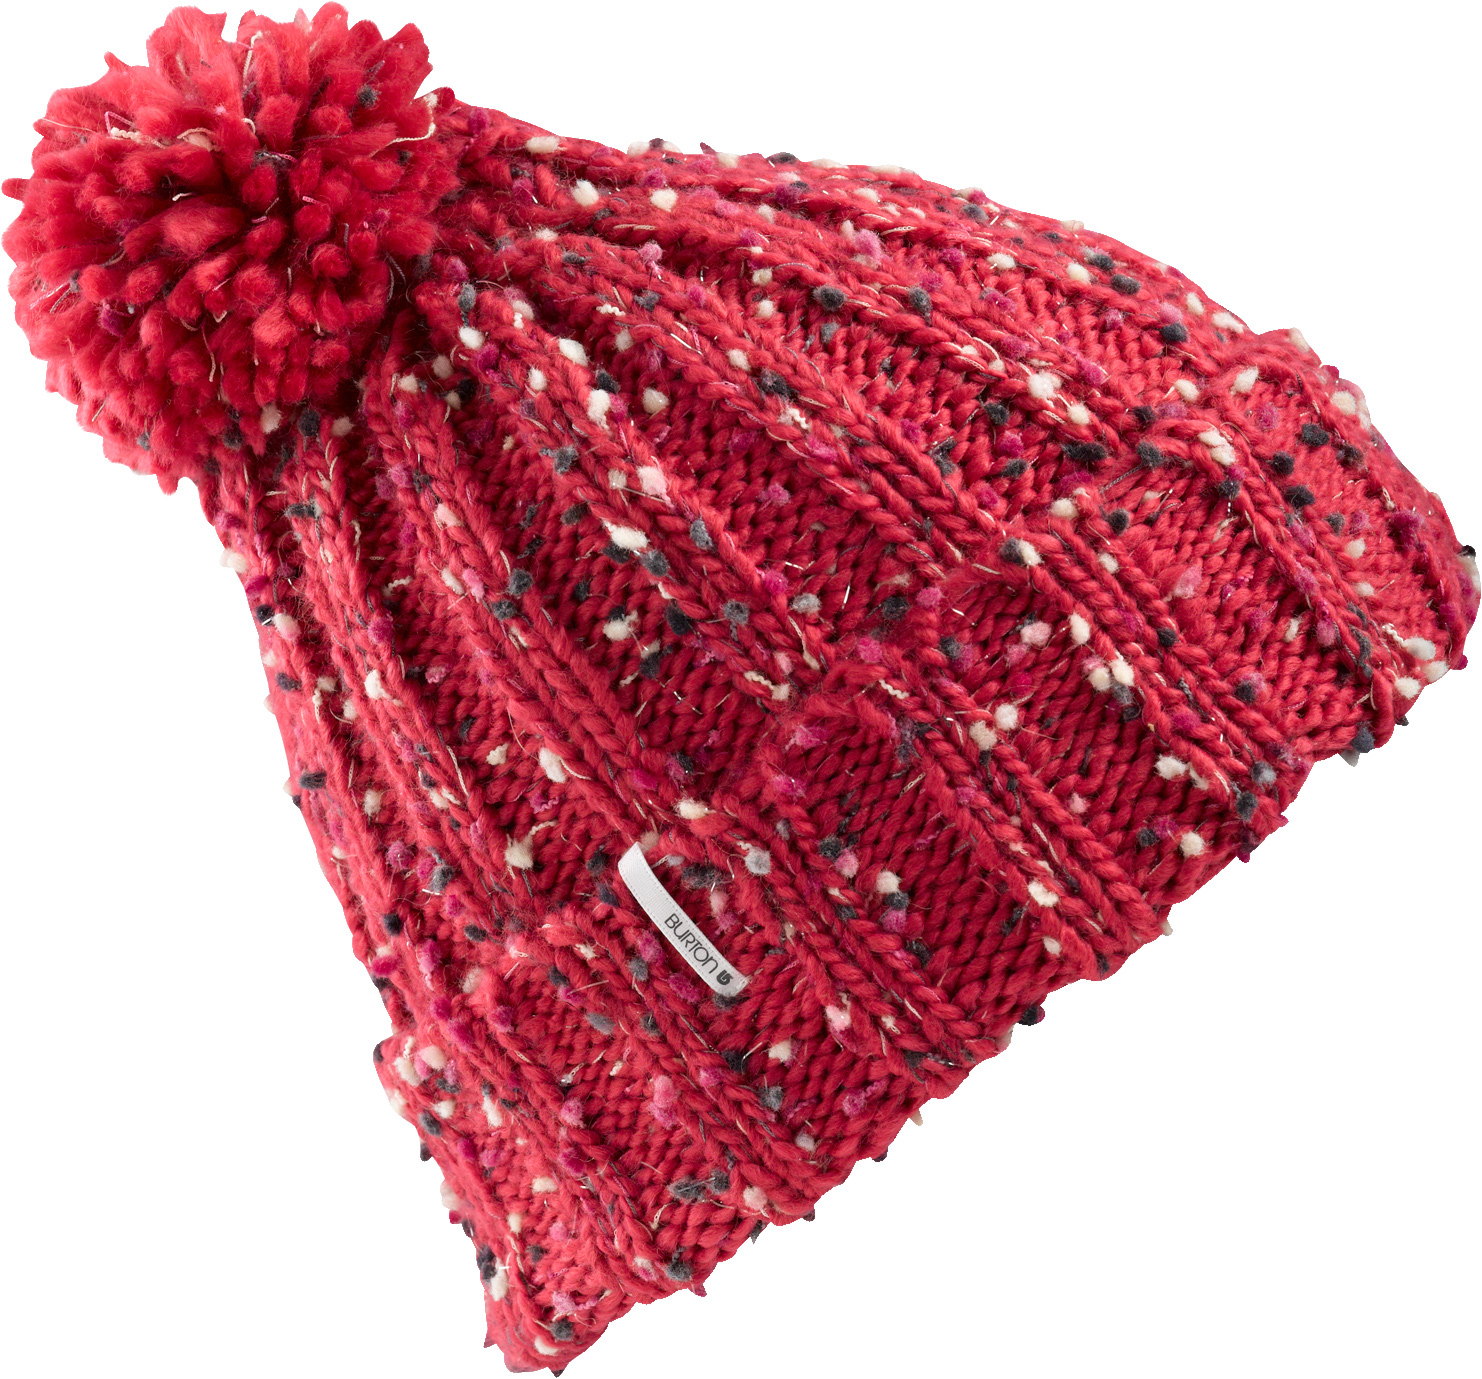 Snowboard Key Features of the Burton Mimi Beanie: 100% Acrylic Multicolored Textured Yarn Beanie with Pom Fold Up with Super Slouch Fit - $15.95